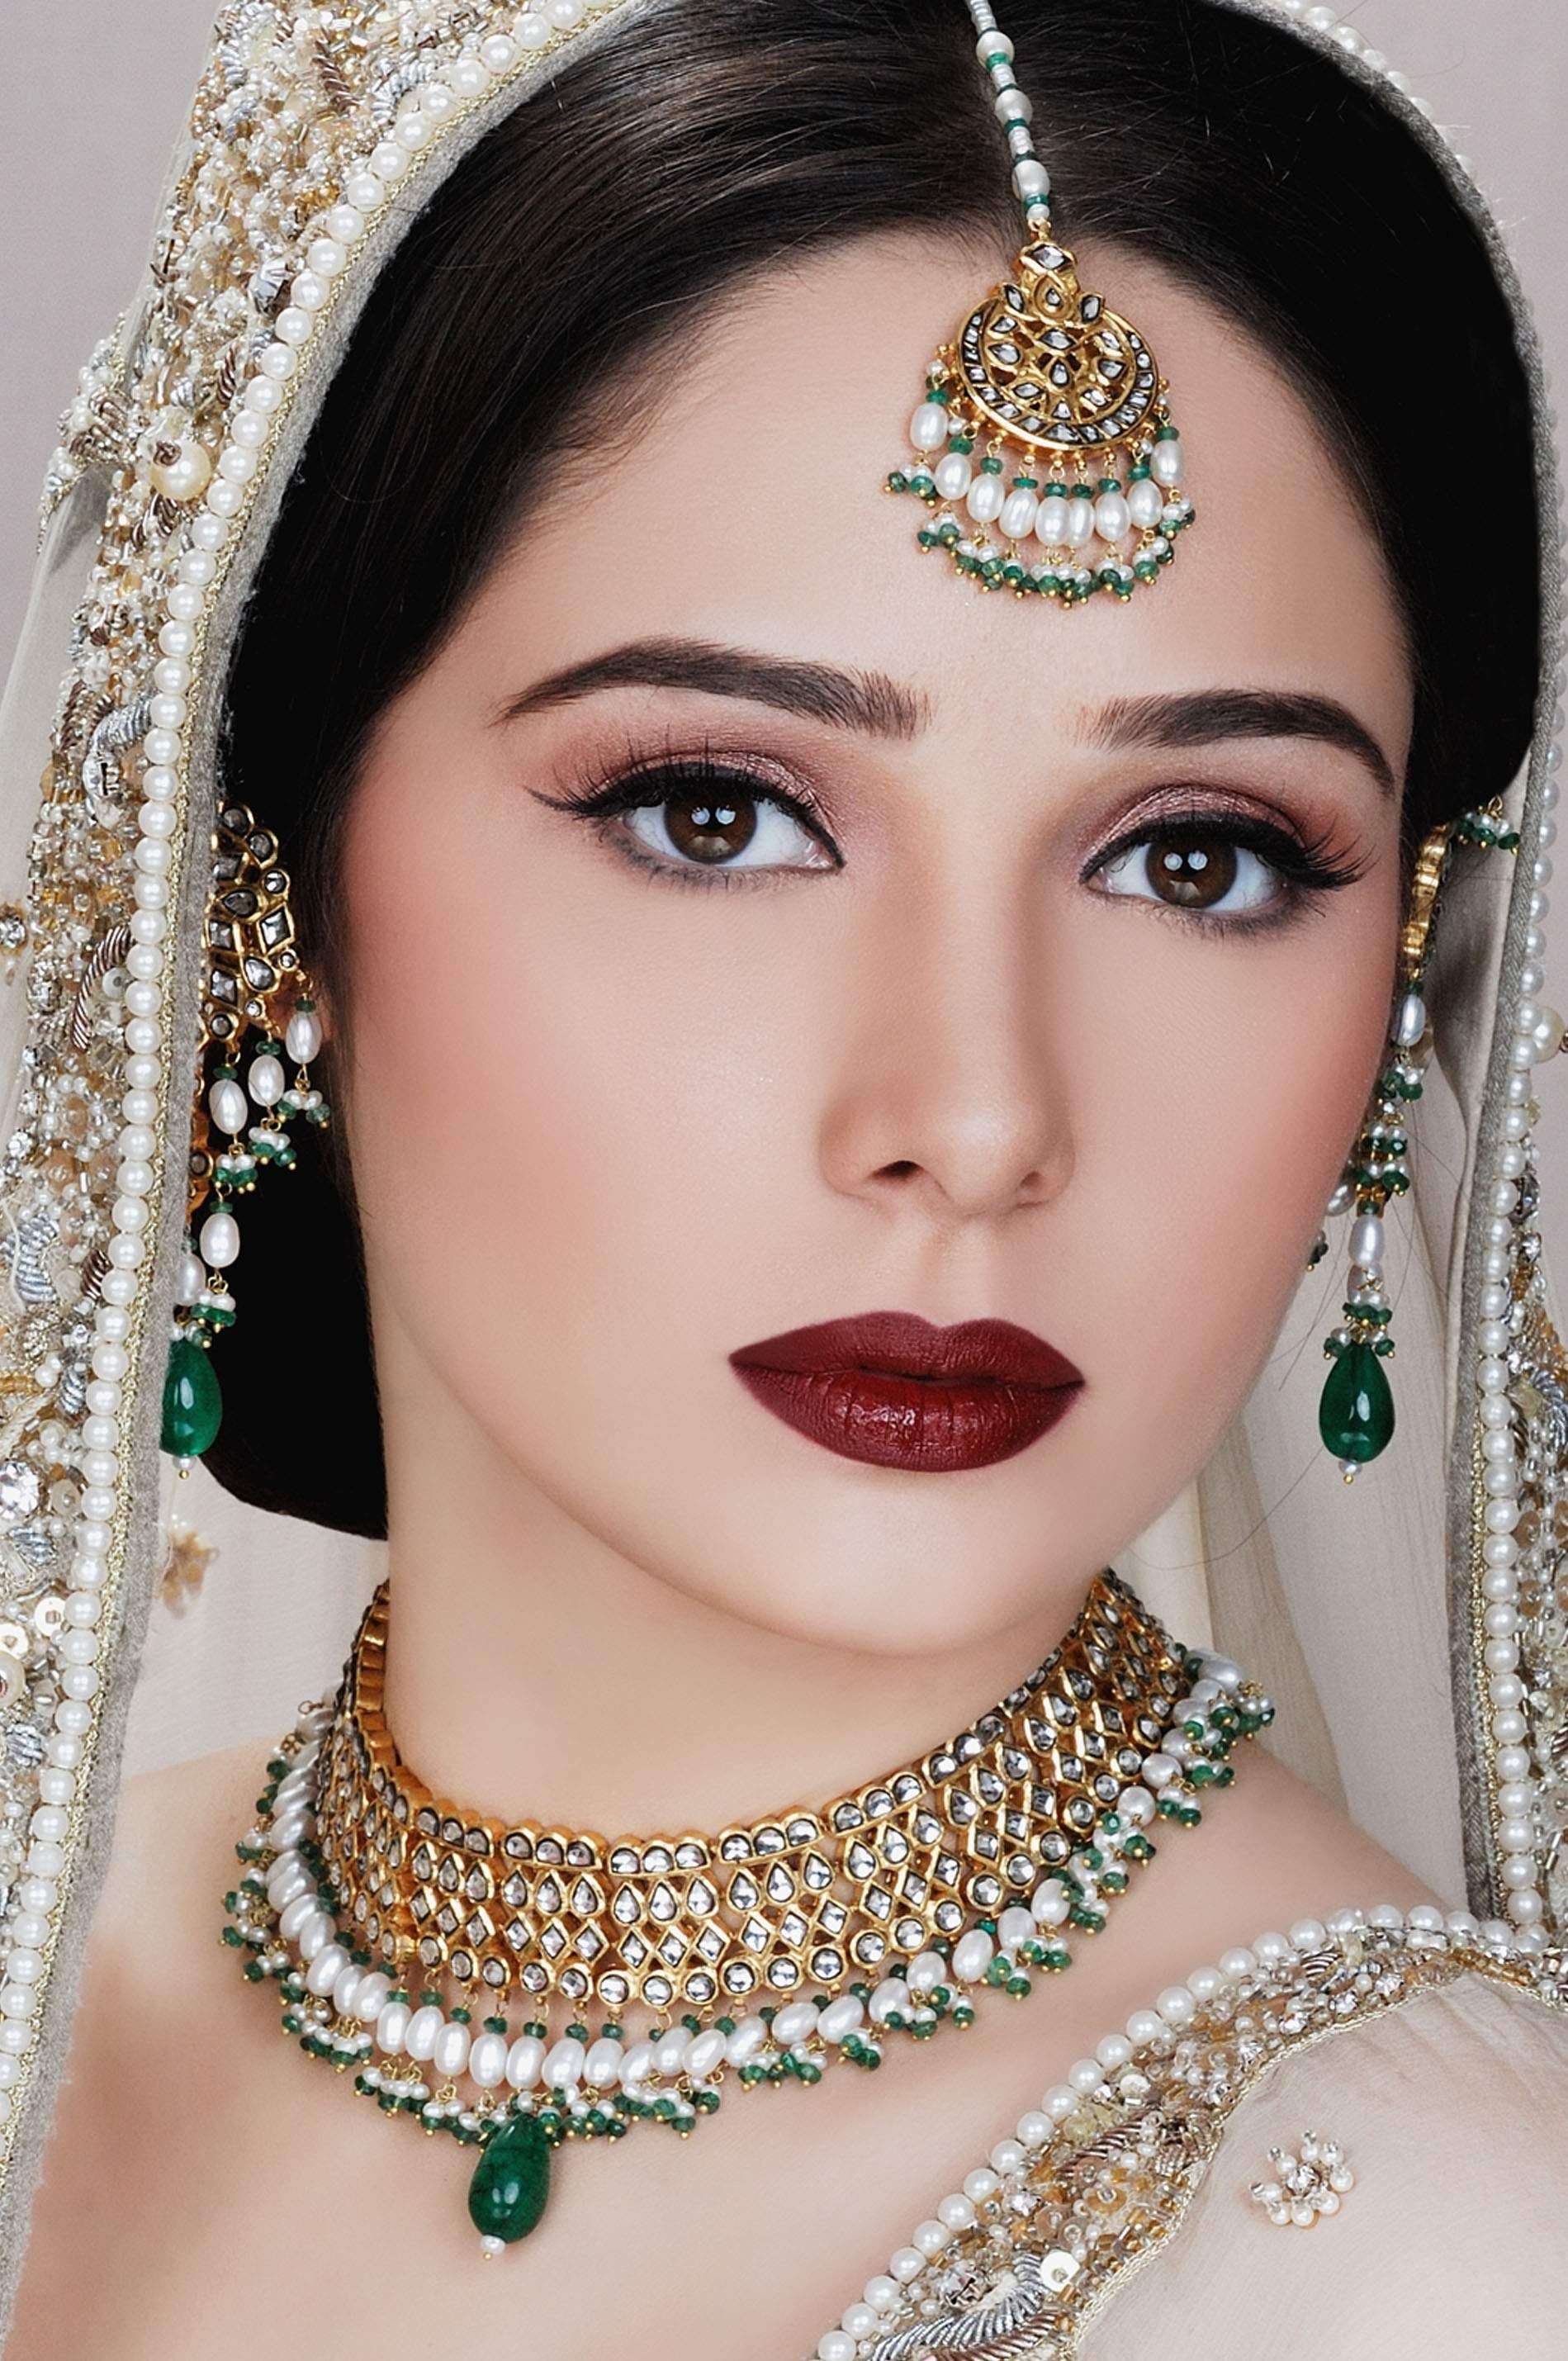 Stunning Indian bridal jewelry | ♔ Middle East Jewellery Sets ...